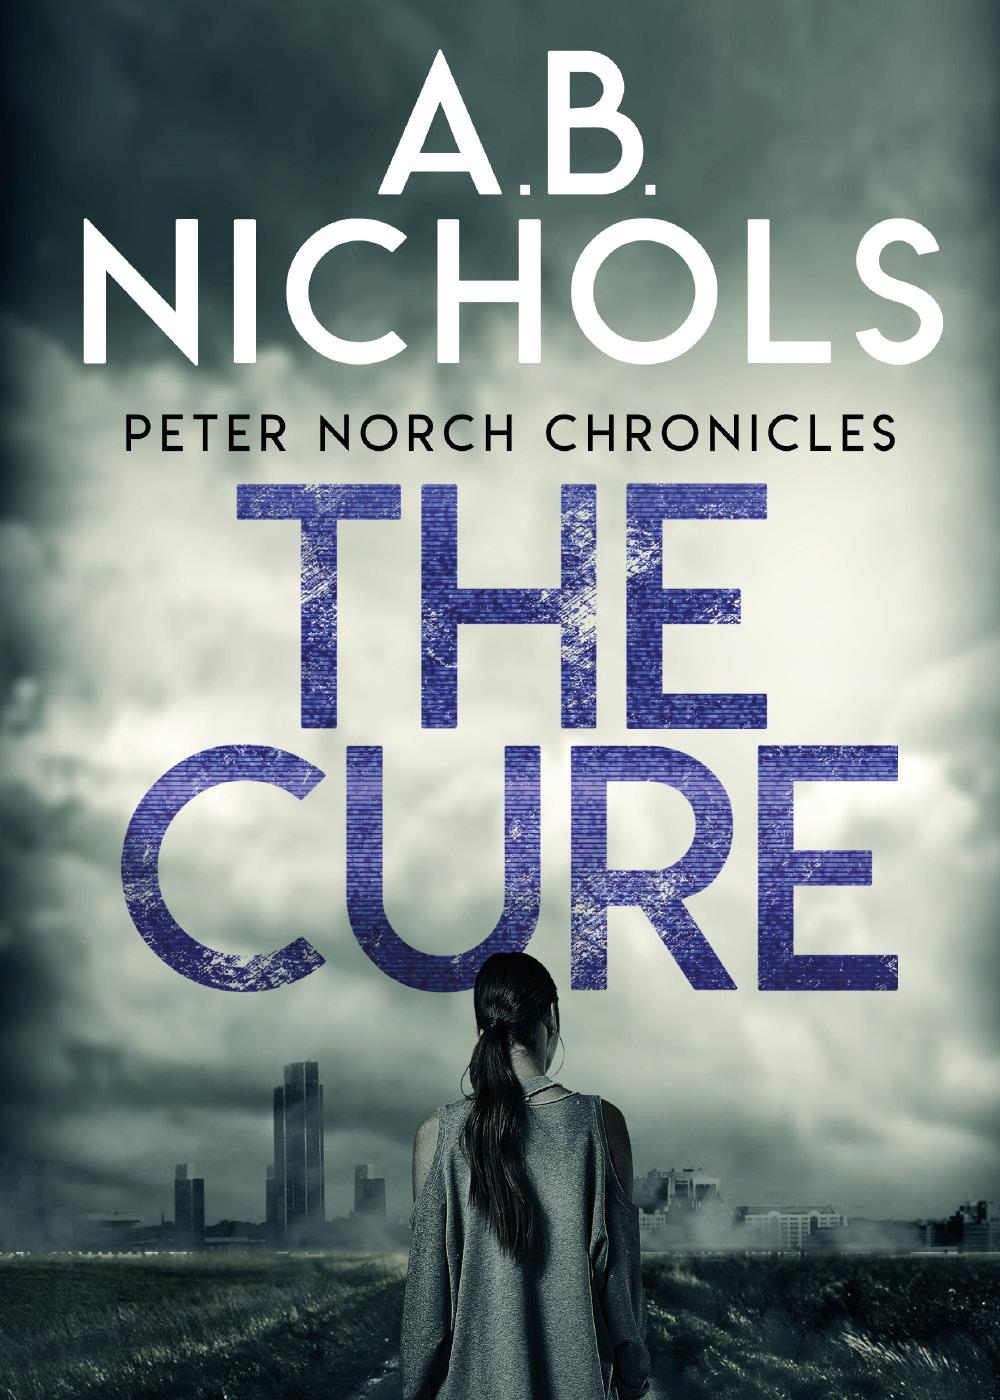 Peter Norch Chronicles - The Cure